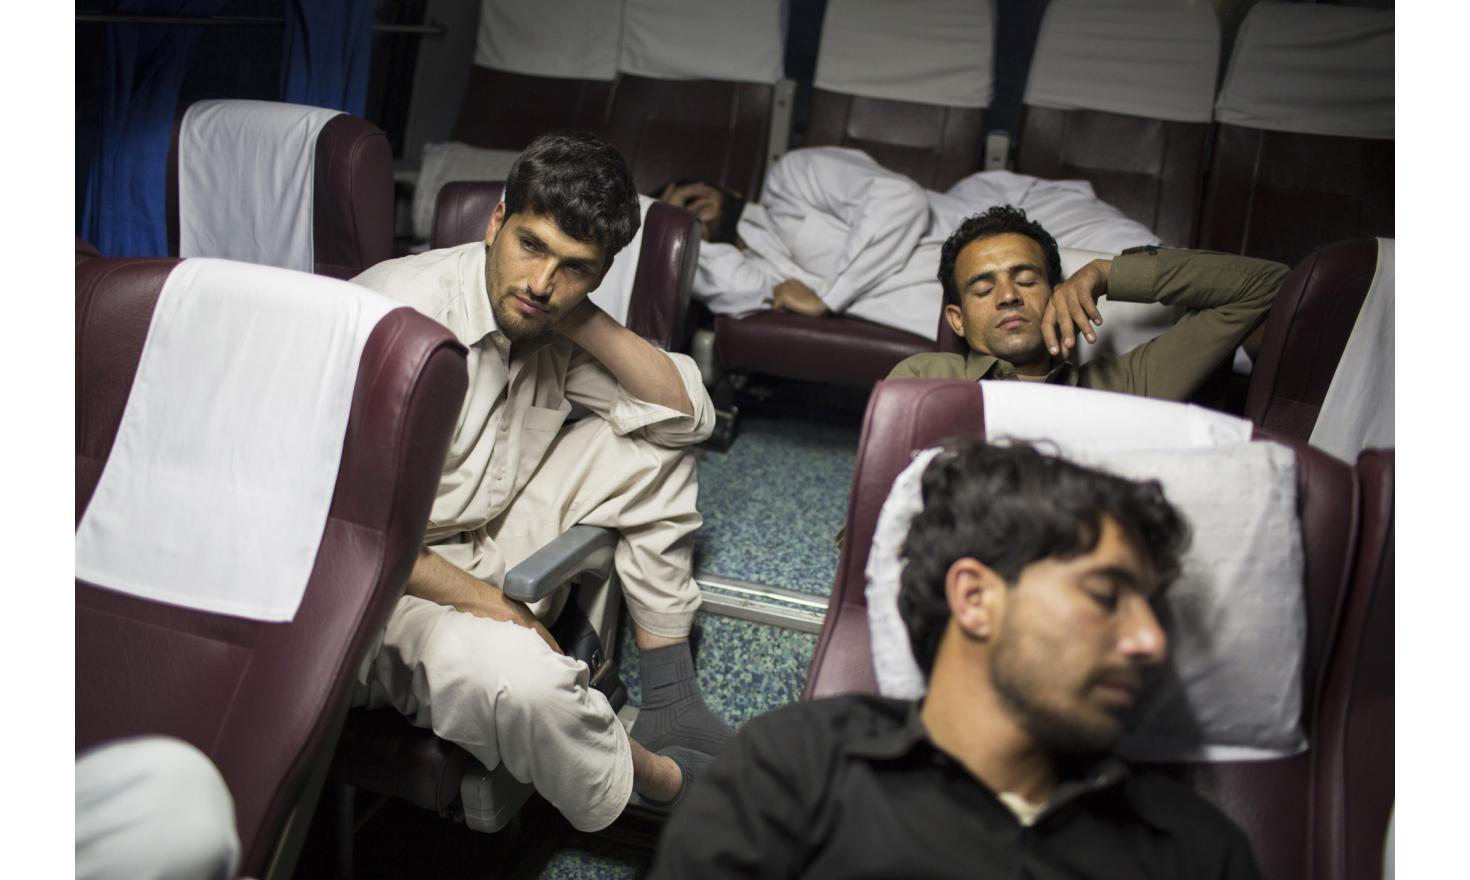 Between Peshawar and Lahore, Pakistan 23/04/2013 Rohani in the bus going from Peshawar to Lahore at night.